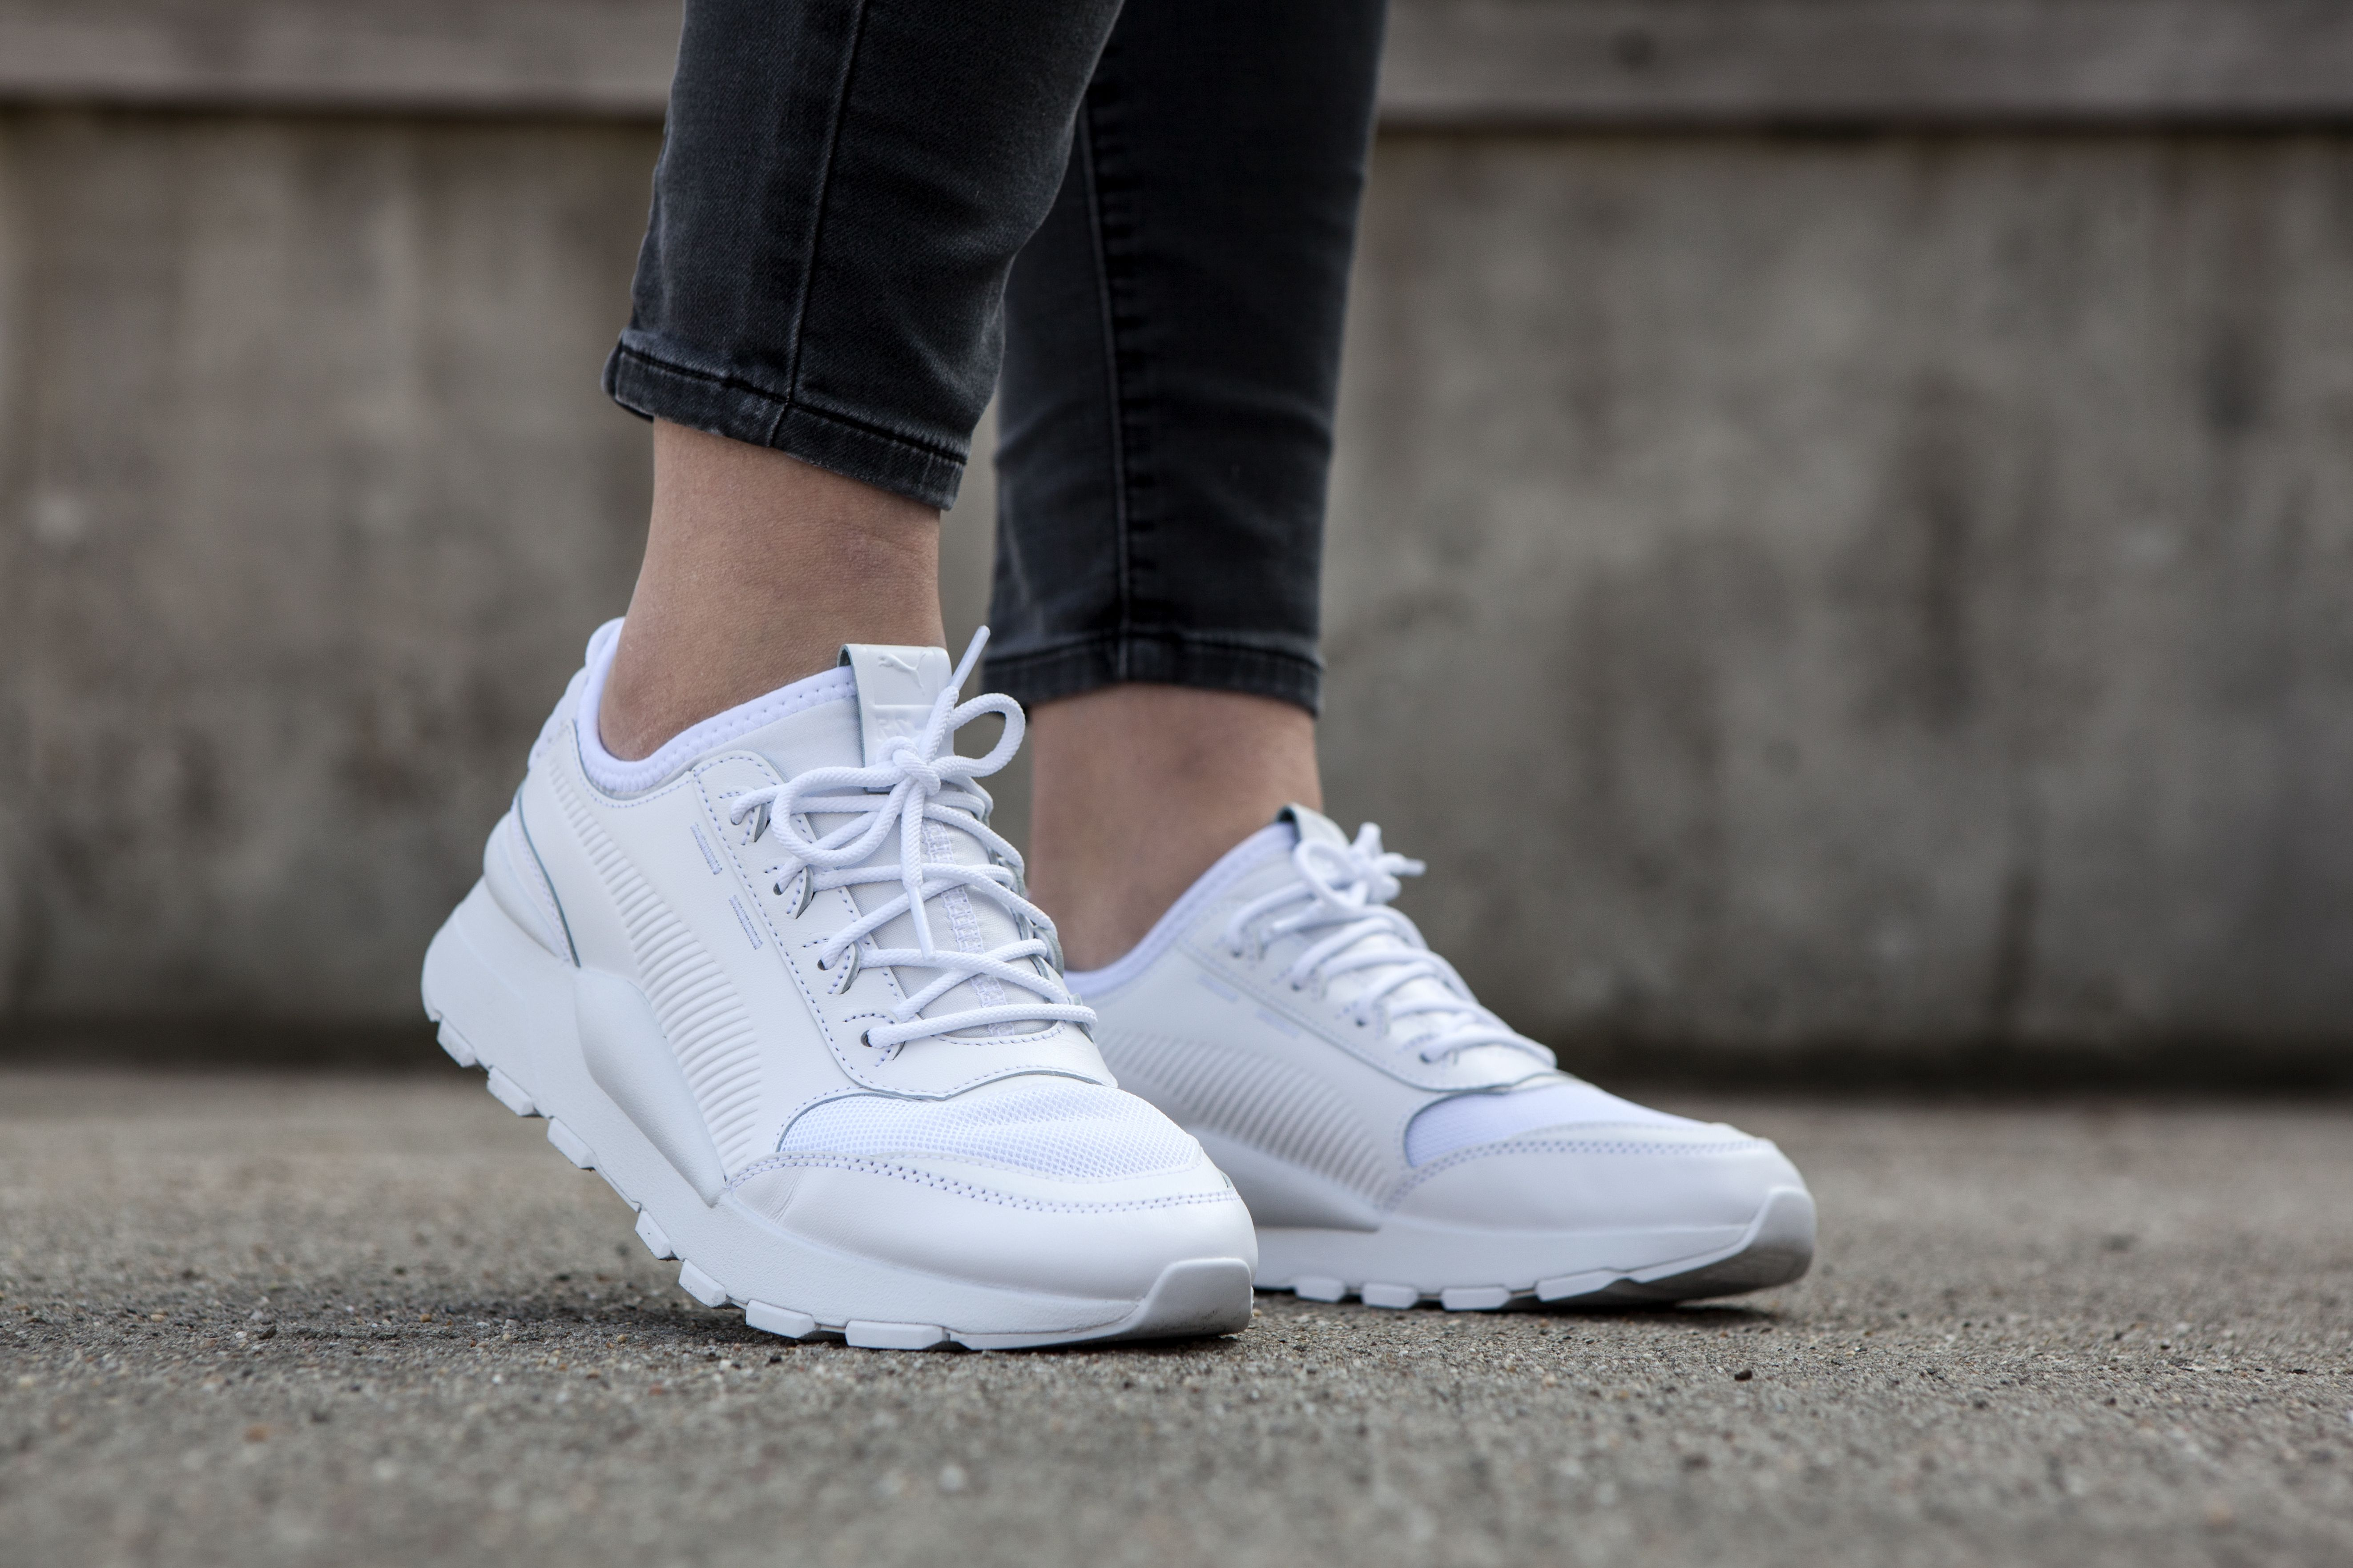 Puma RS-0 Sound Wit Heren | Nike sneakers, Sneaker, Nike heren